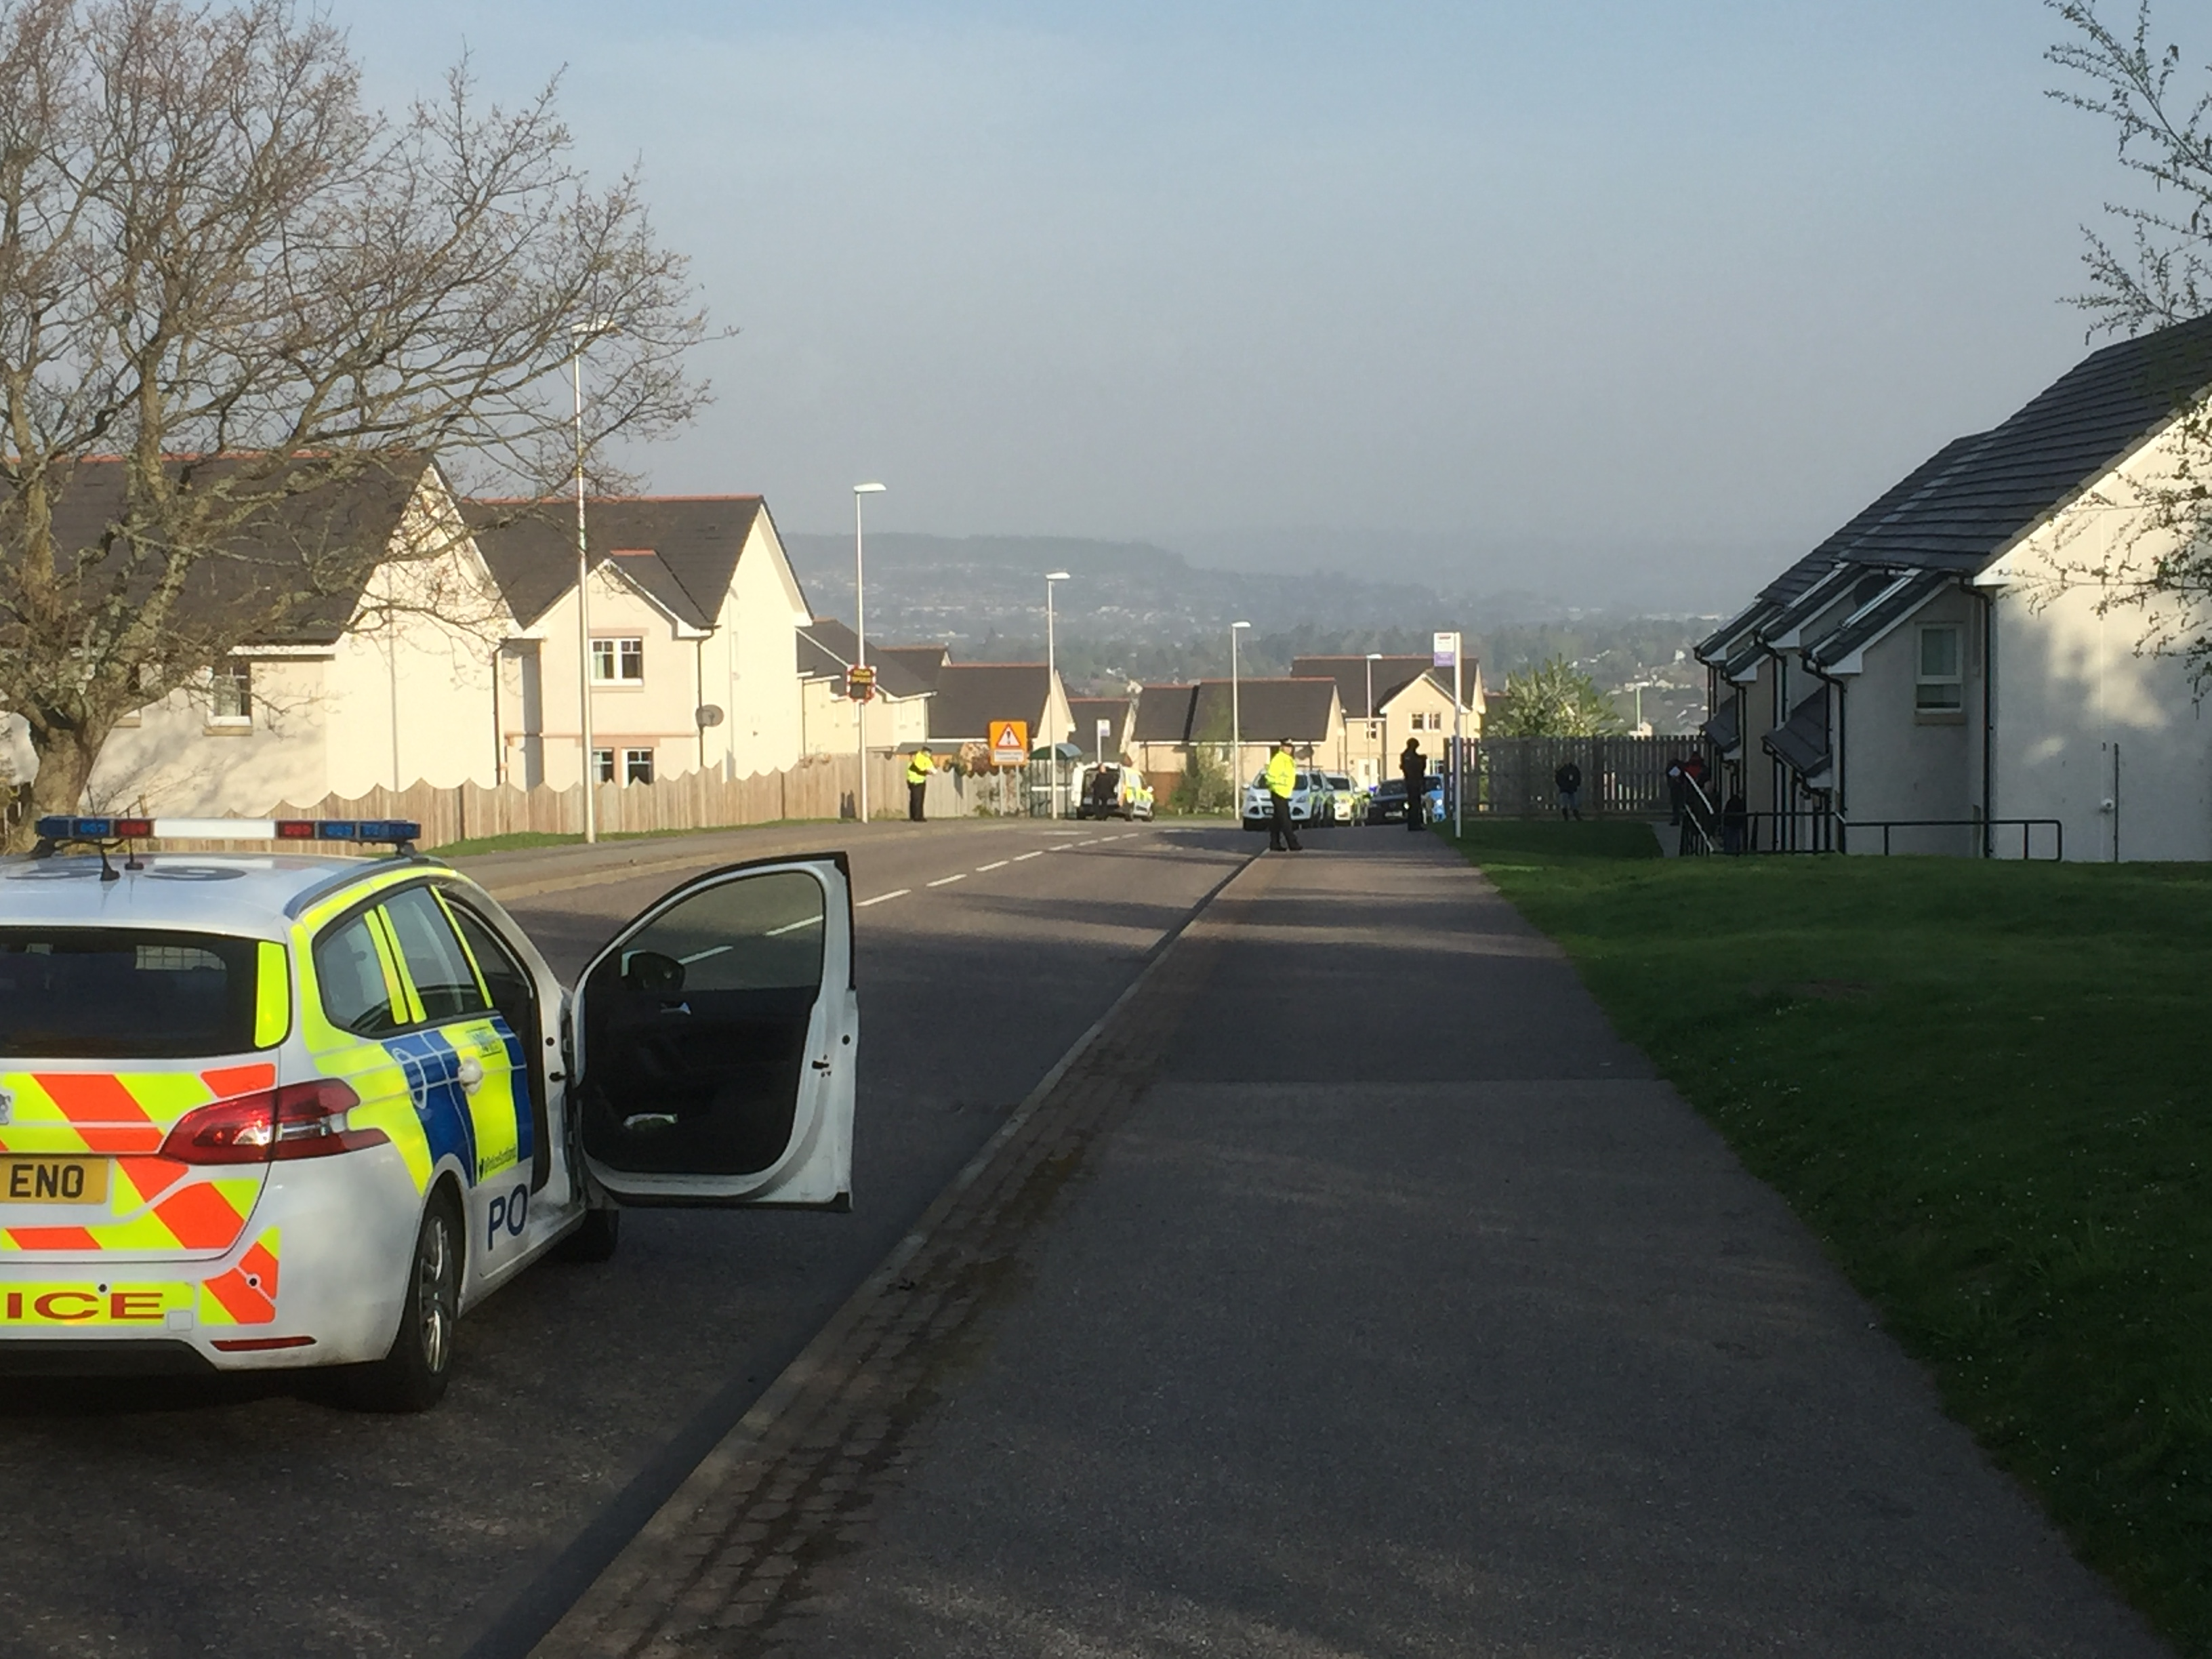 Police on the scene in Milton of Leys this morning.